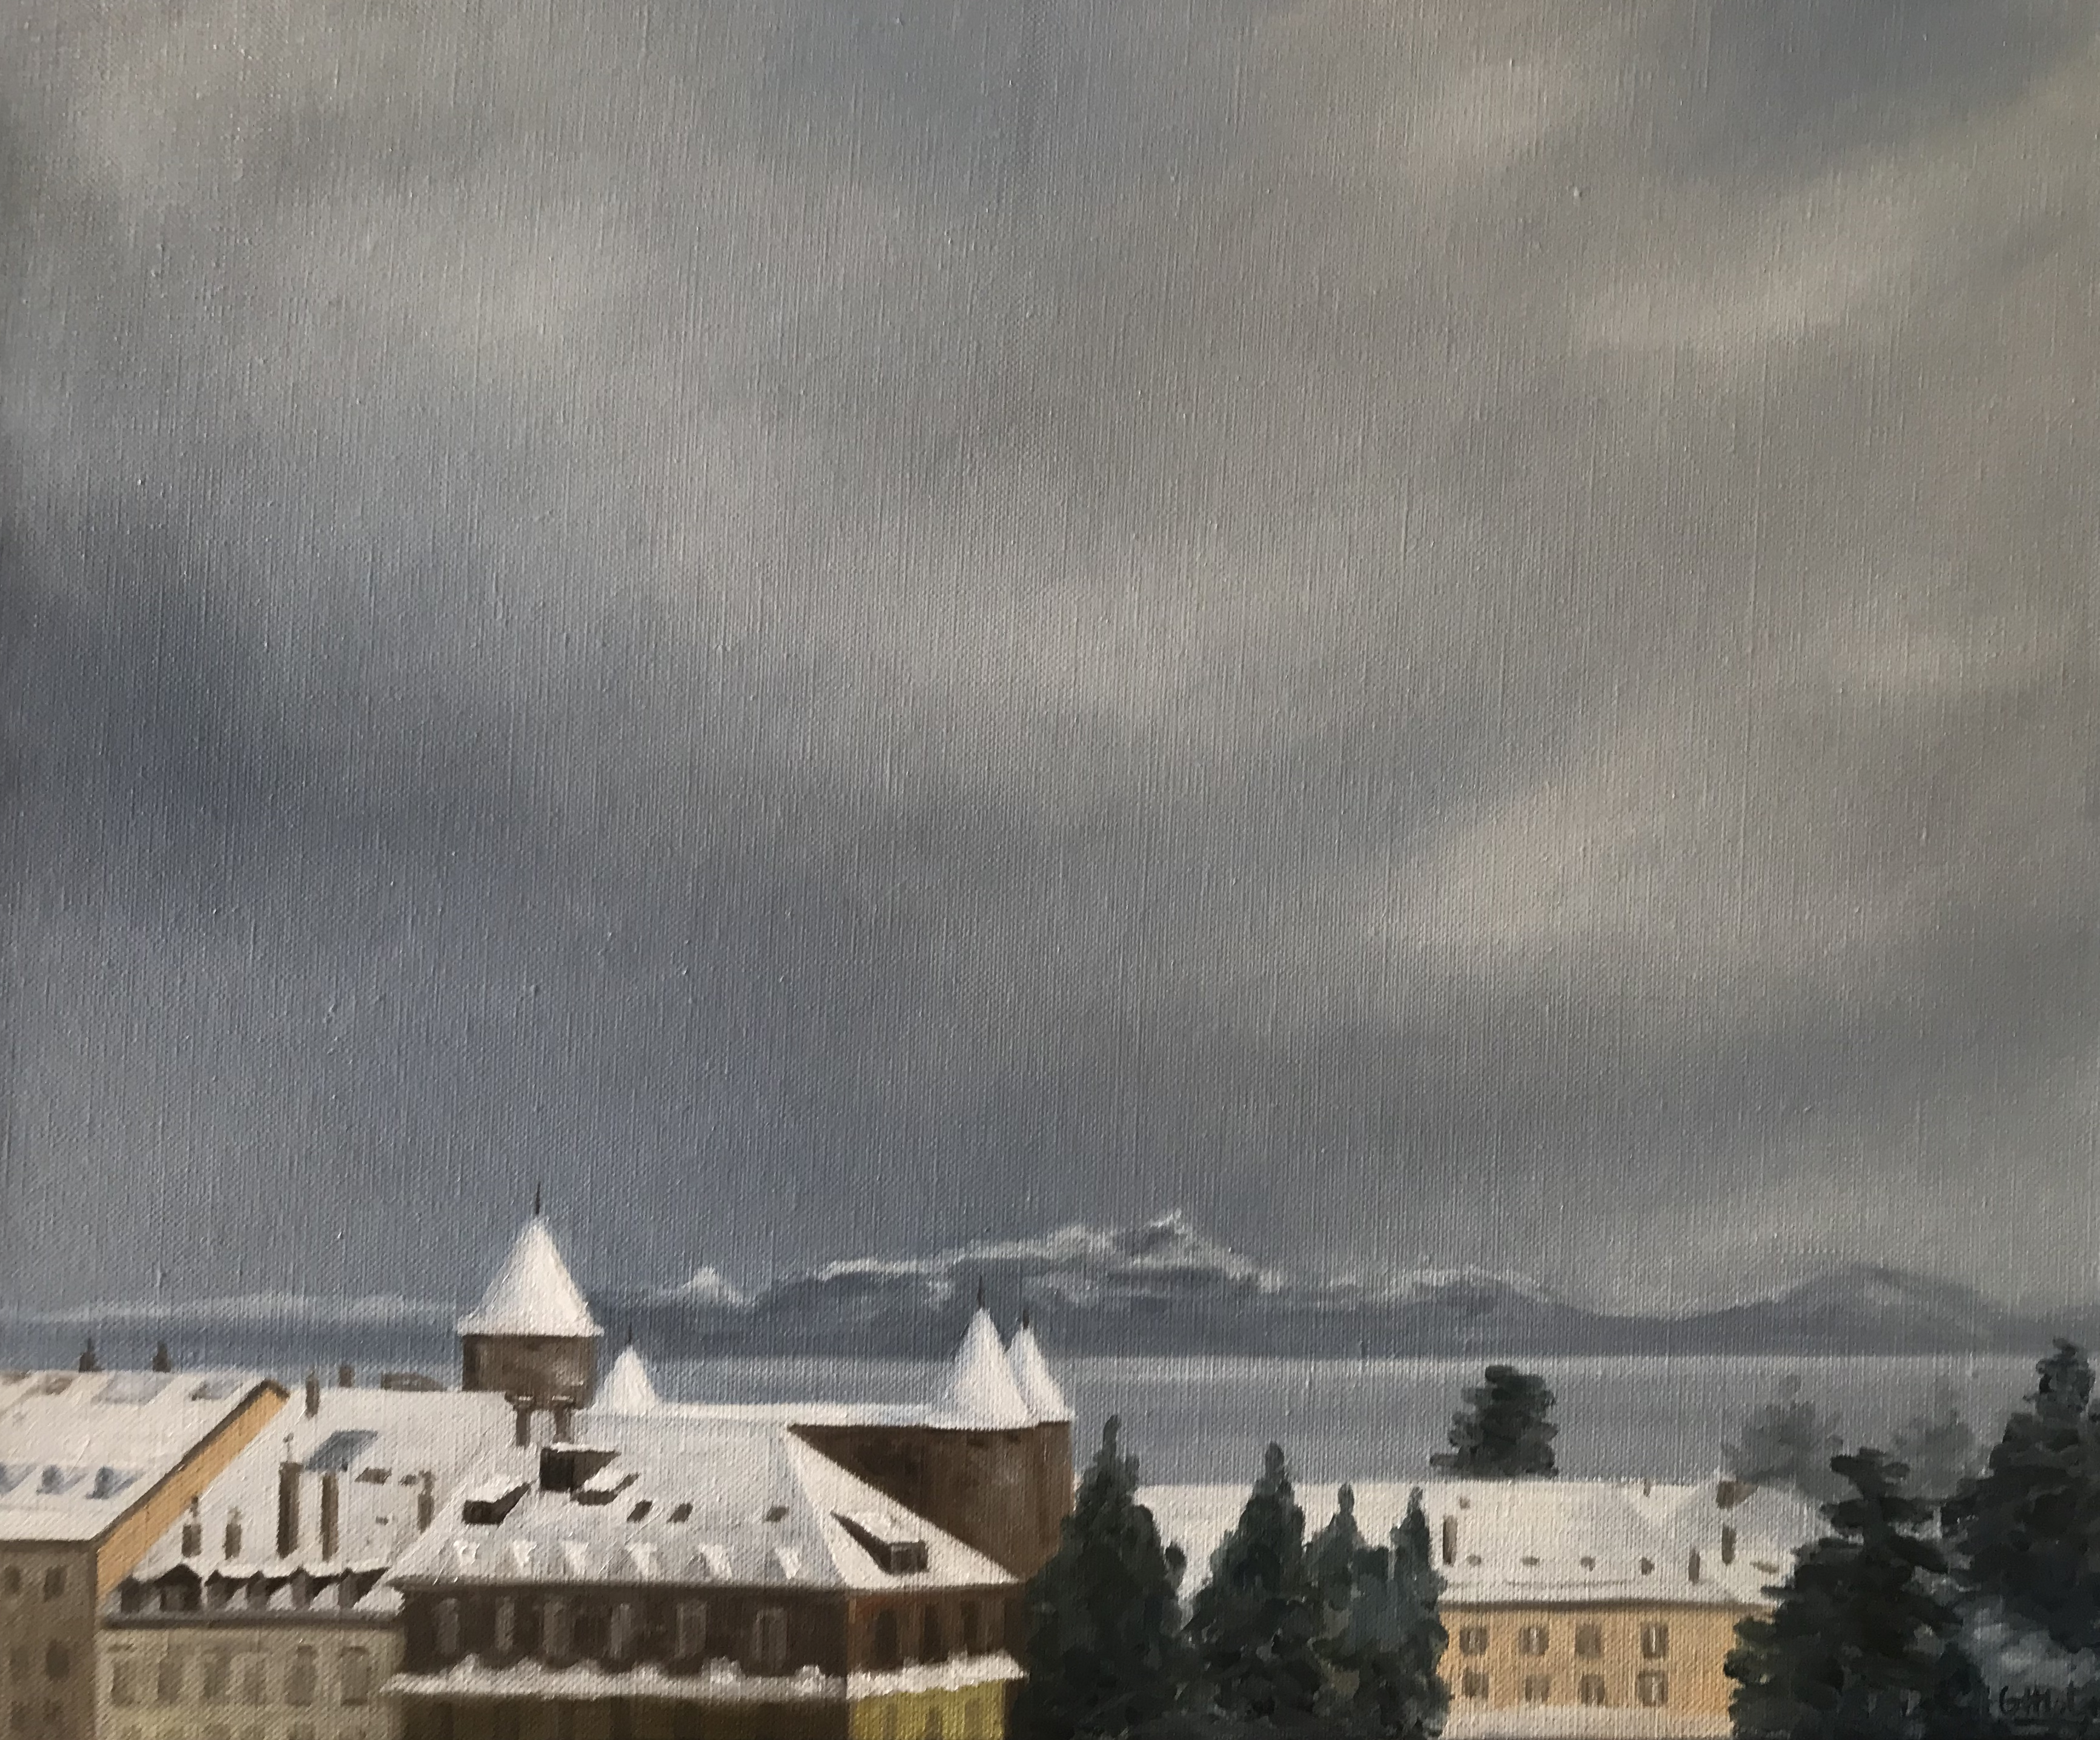 Morges under the snow